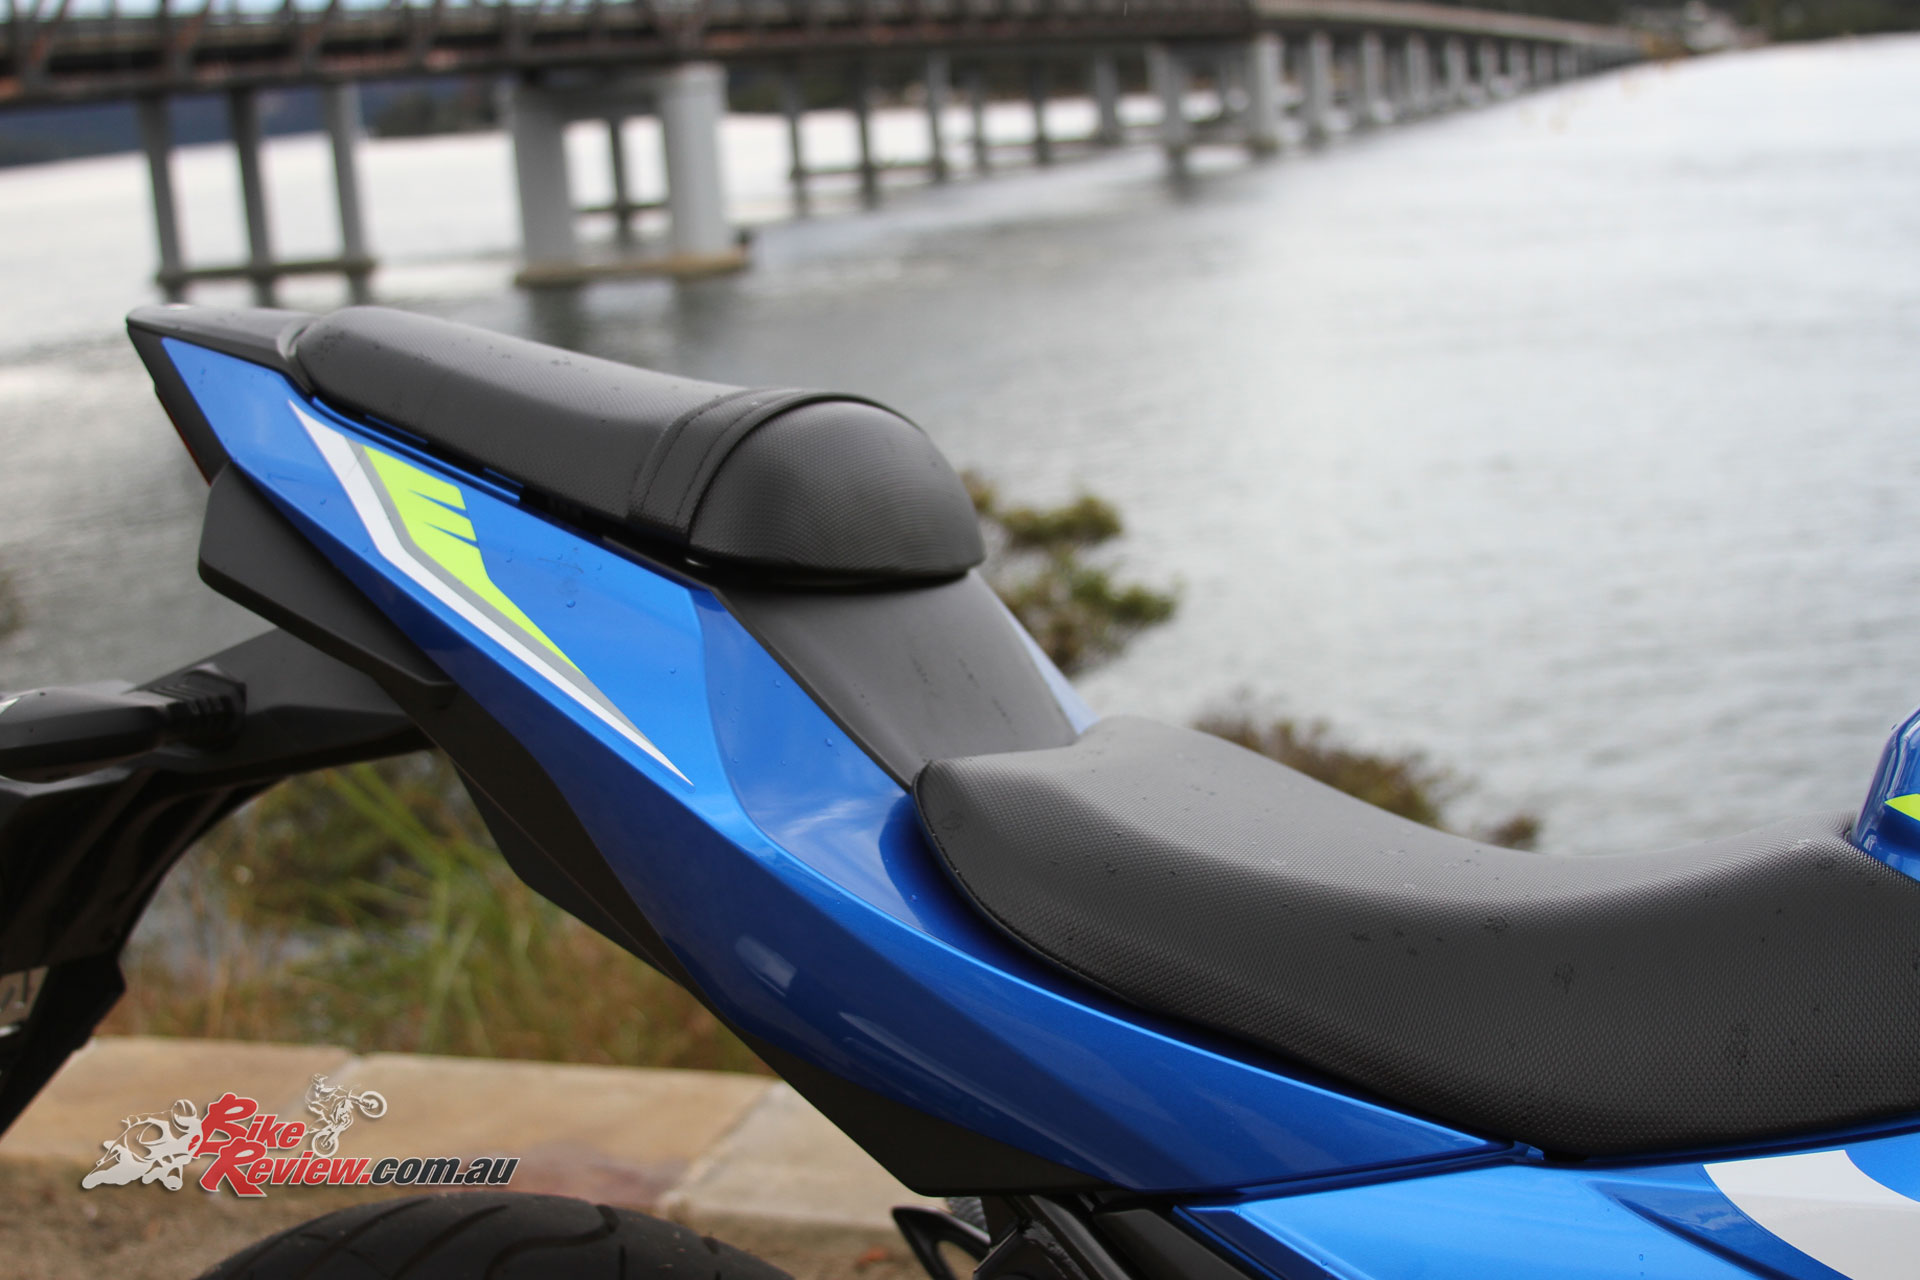 A low 790mm seat height feels very close to the ground with a compact seating position and reach to the 'bars